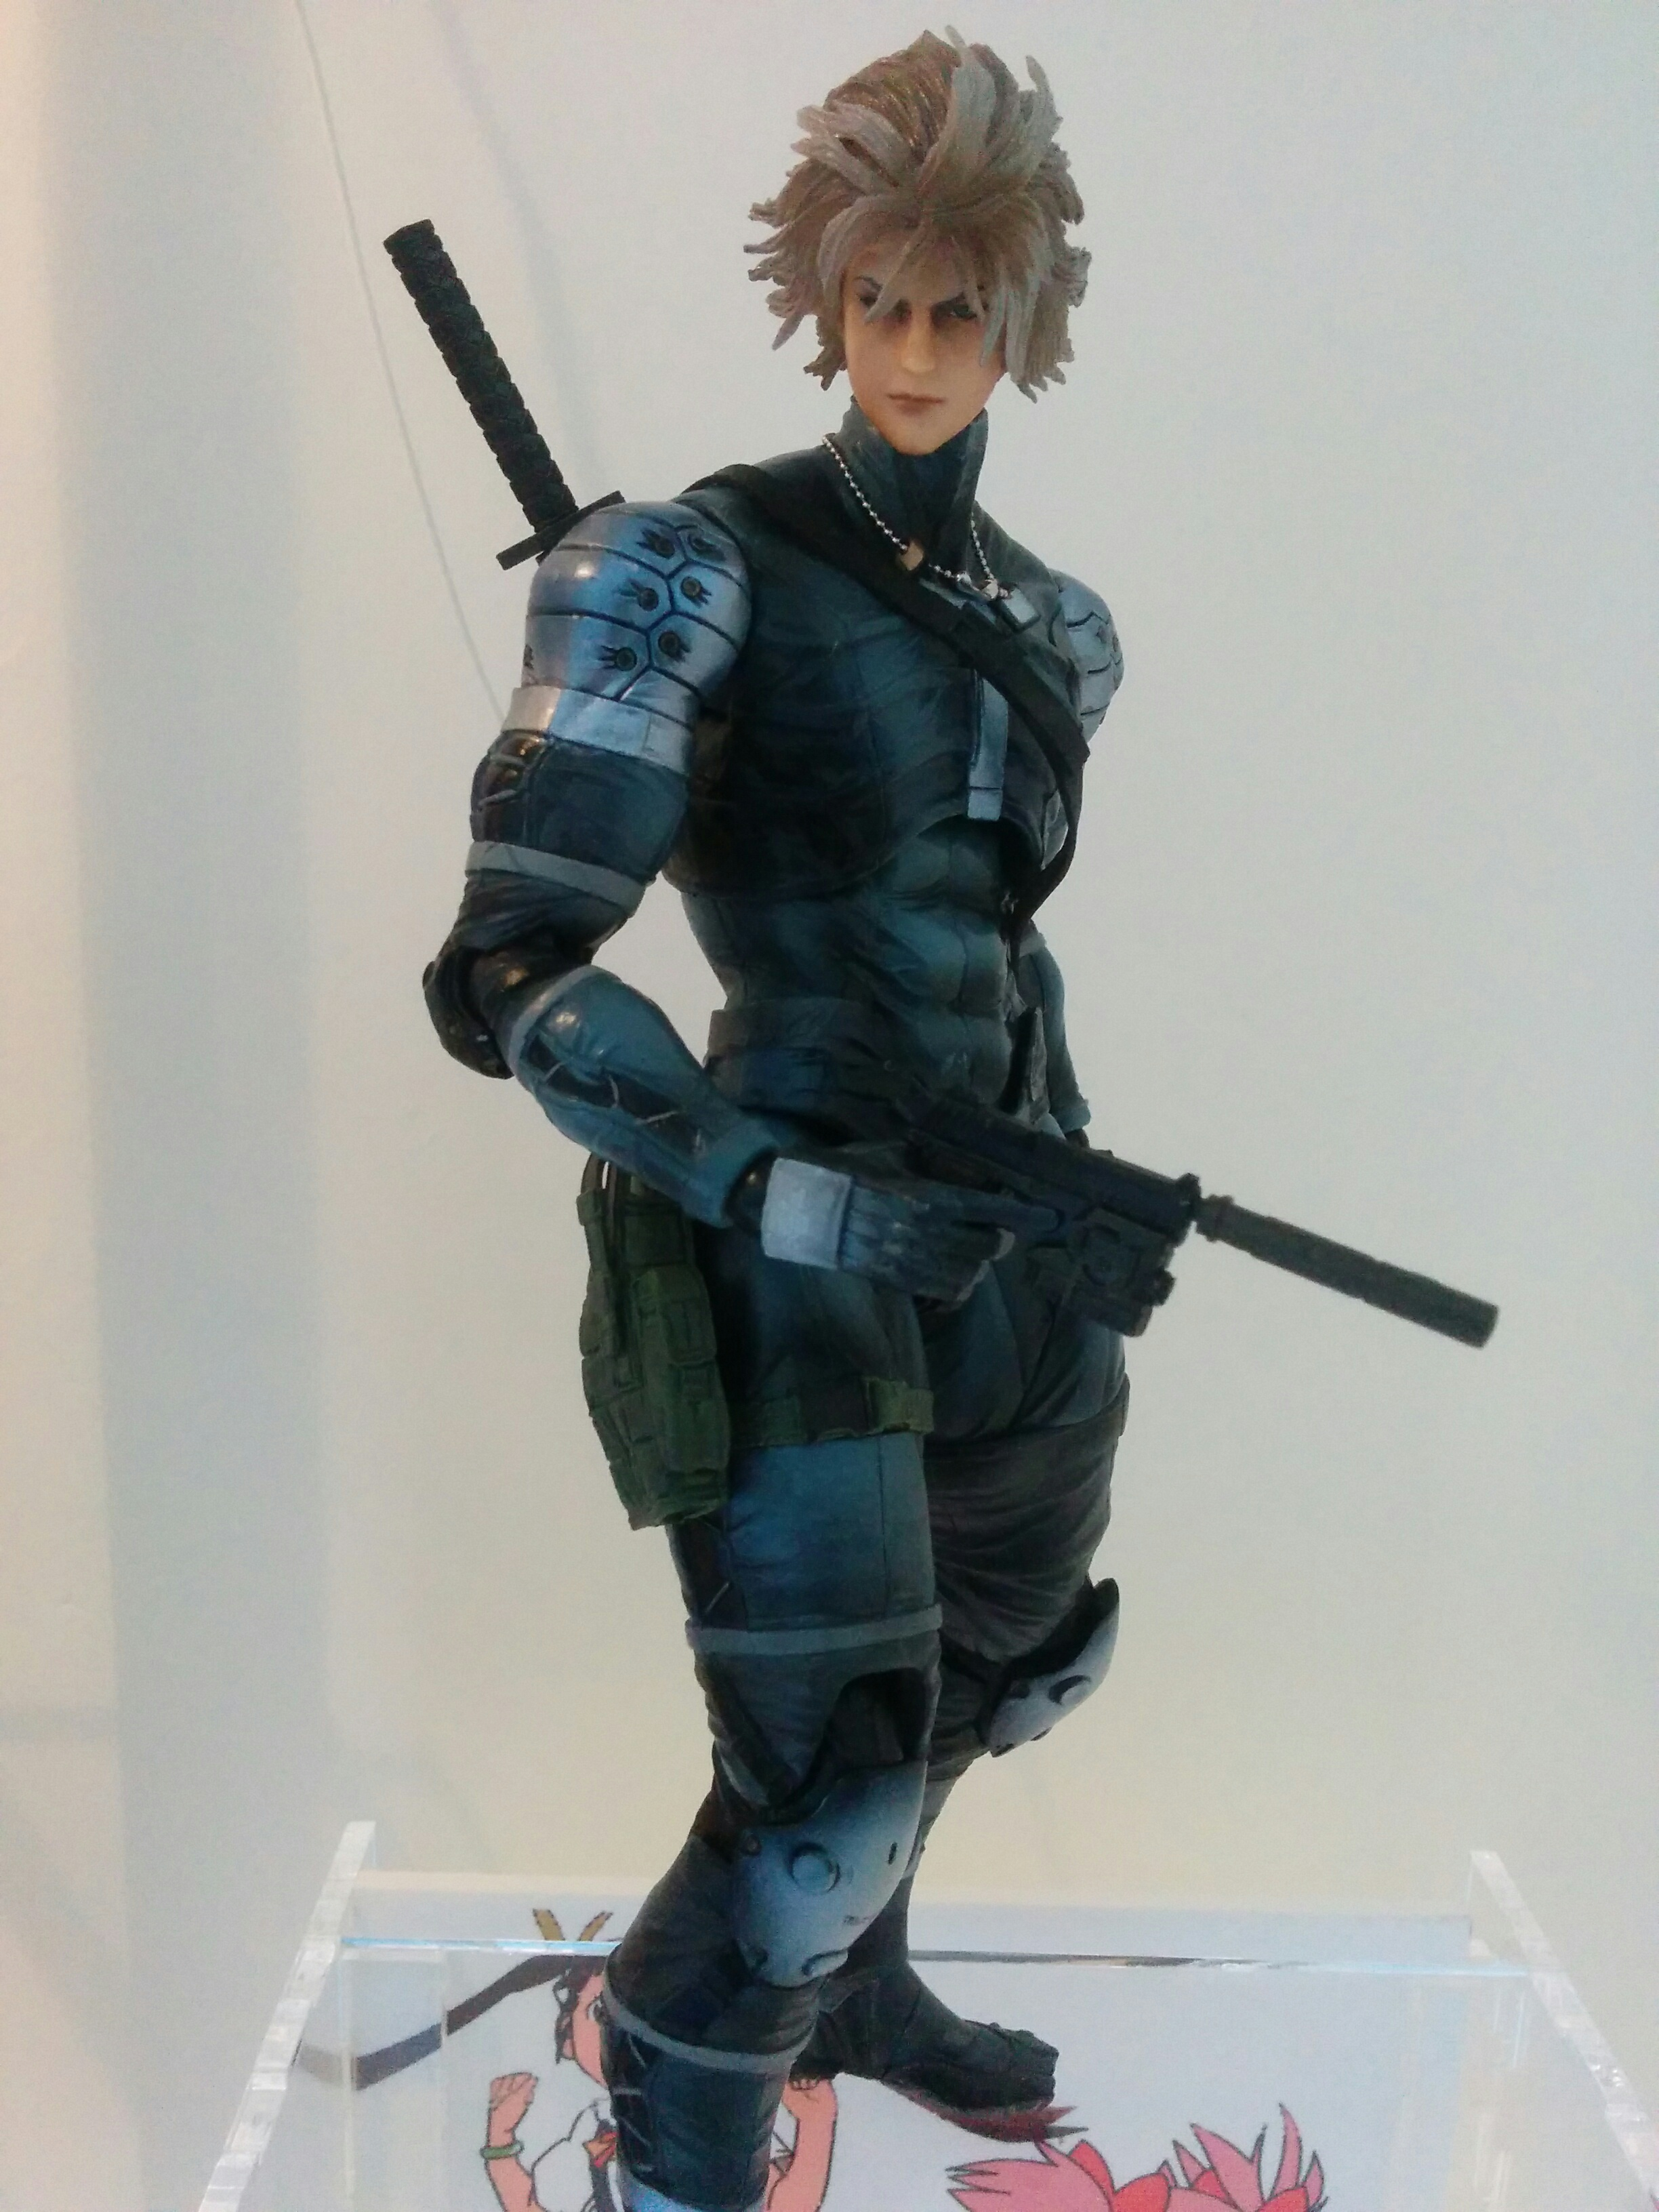 square_enix play_arts_kai raiden konami kojima_productions metal_gear_solid_2:_sons_of_liberty